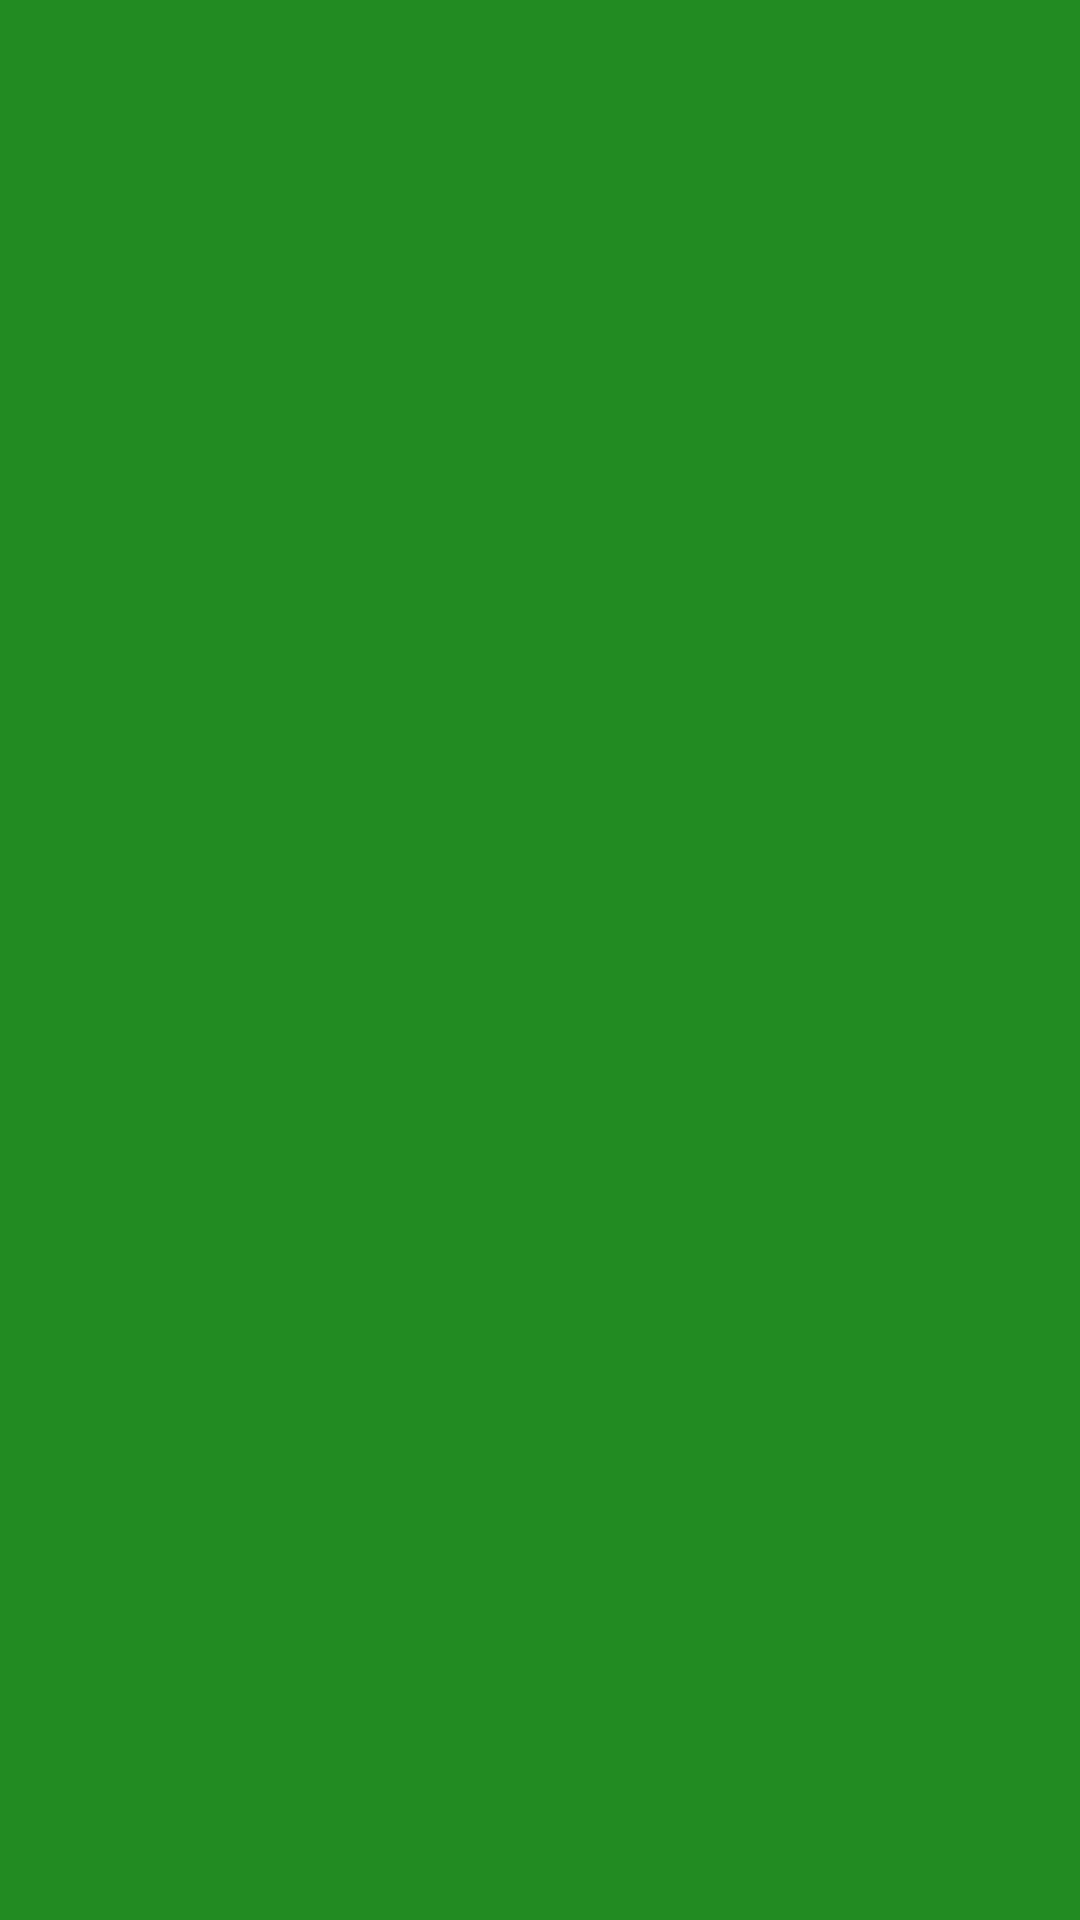 1080x1920 Forest Green For Web Solid Color Background